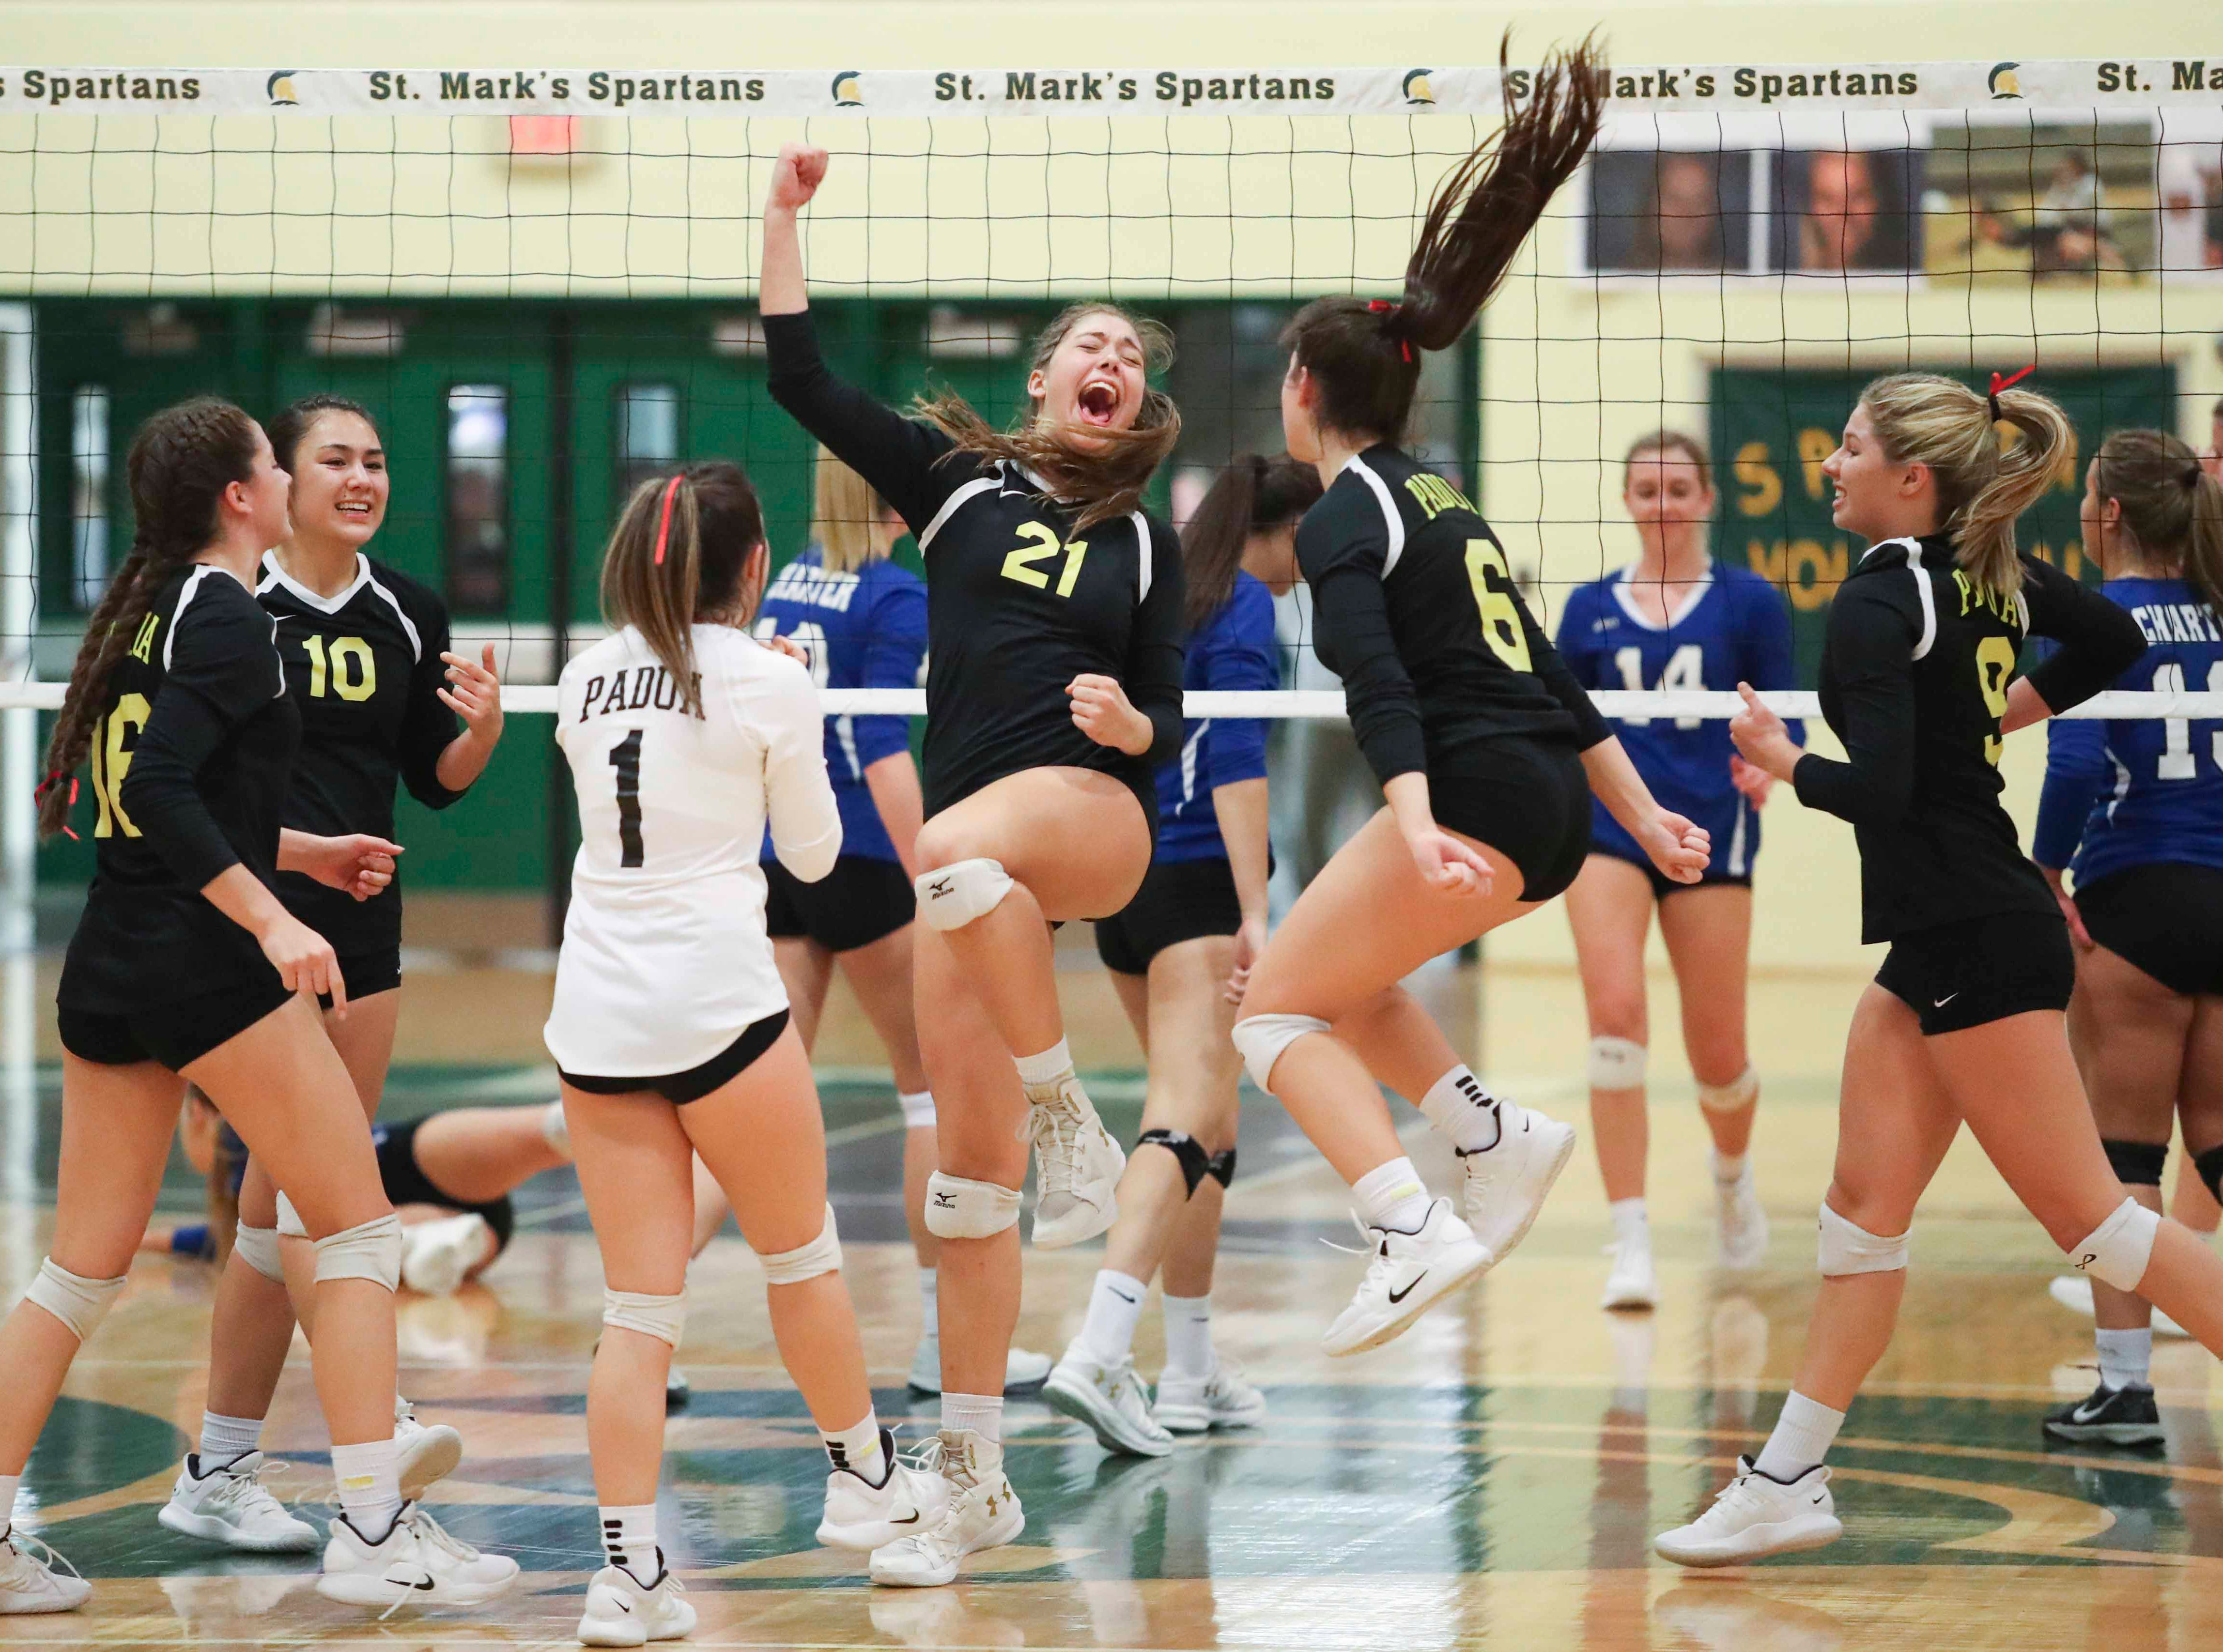 Padua's Michelle Kozicki (21) and Audrey Lyons (6) join their teammates after a point as the Force eventually advances to Monday's final in the DIAA state tournament Thursday at St. Mark's High School.